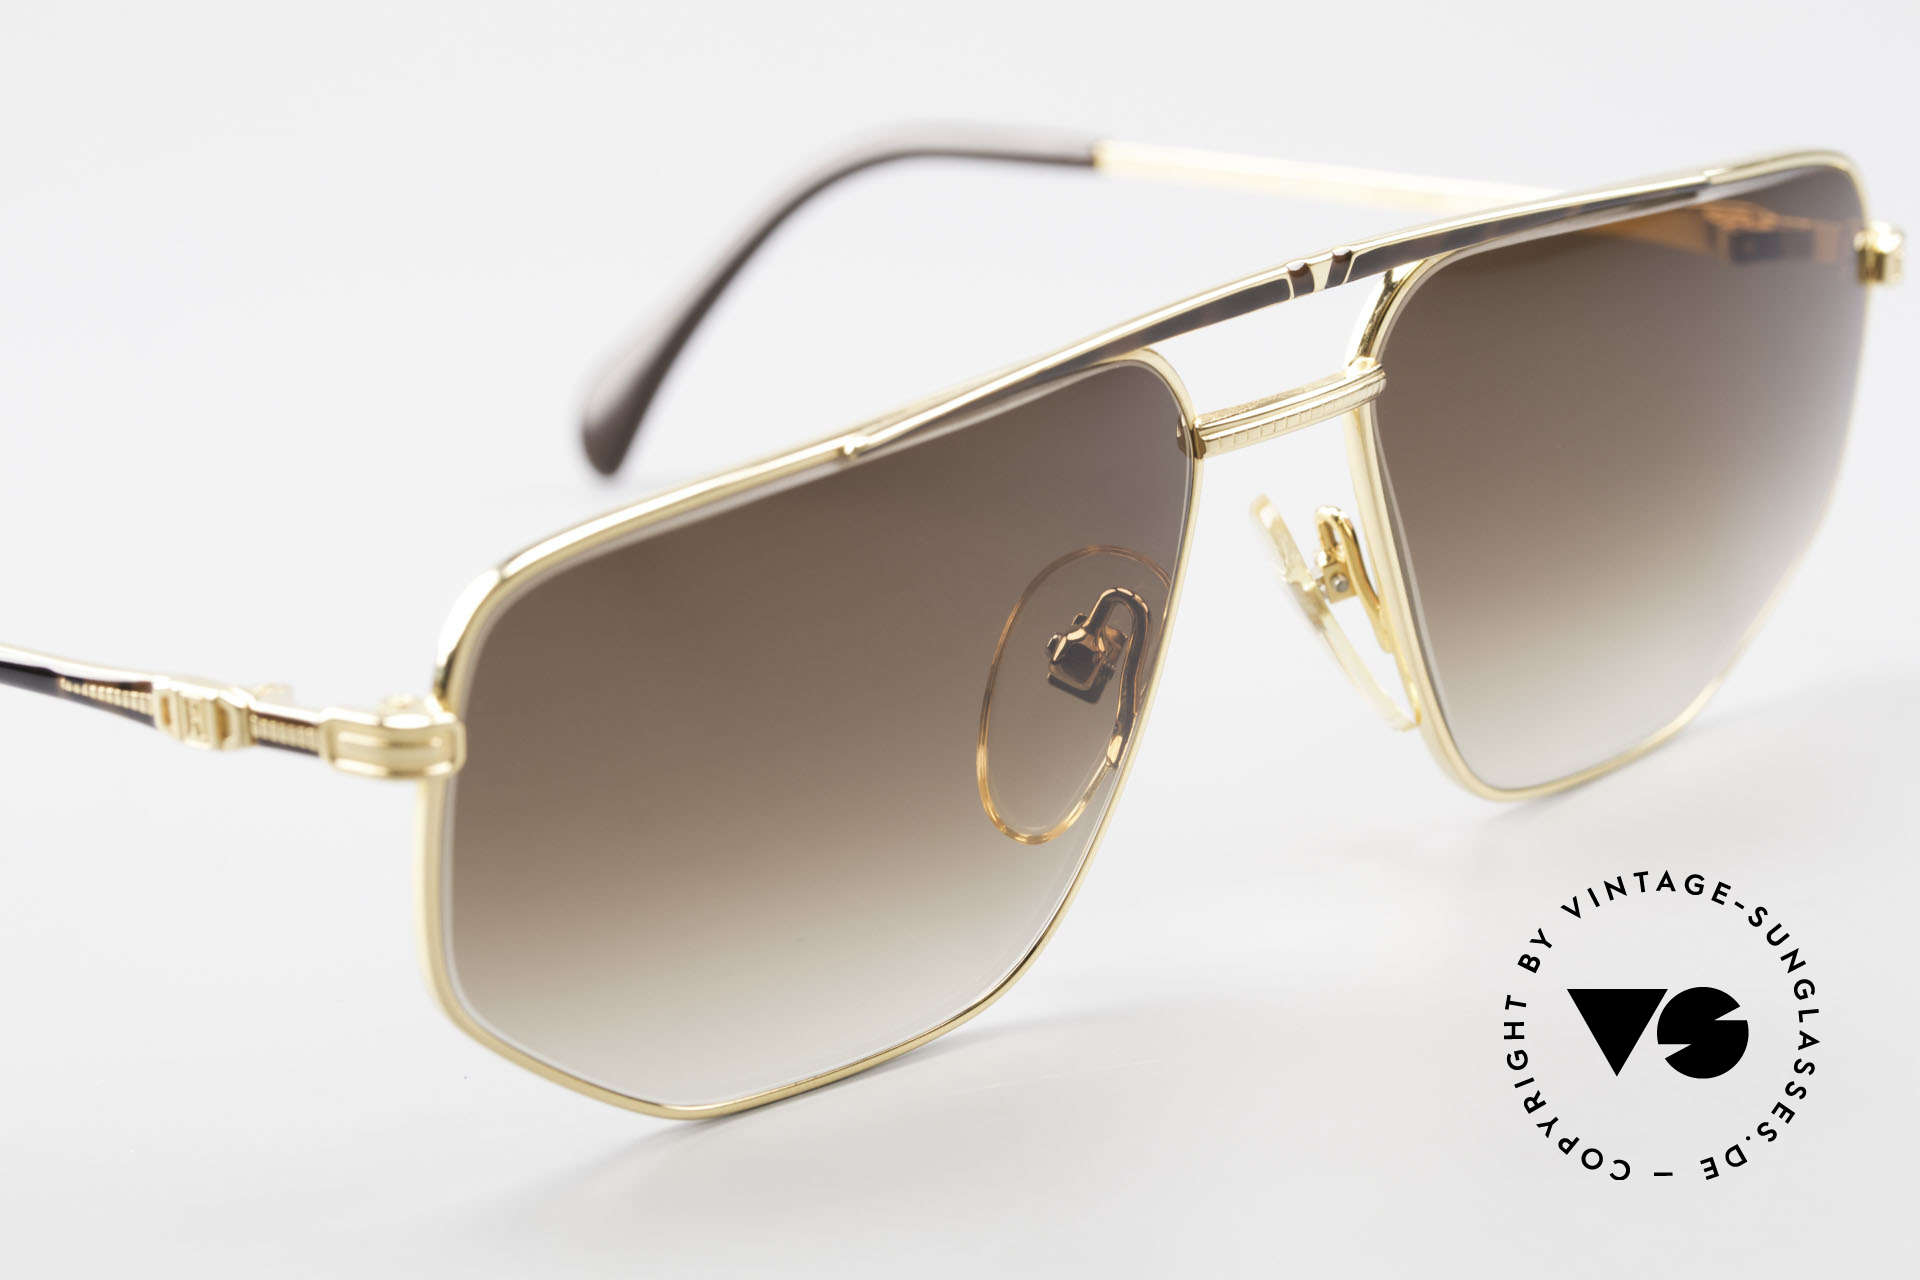 Roman Rothschild R1037 Gold Plated Luxury Shades, sun lenses (100%UV) can be replaced with prescriptions, Made for Men